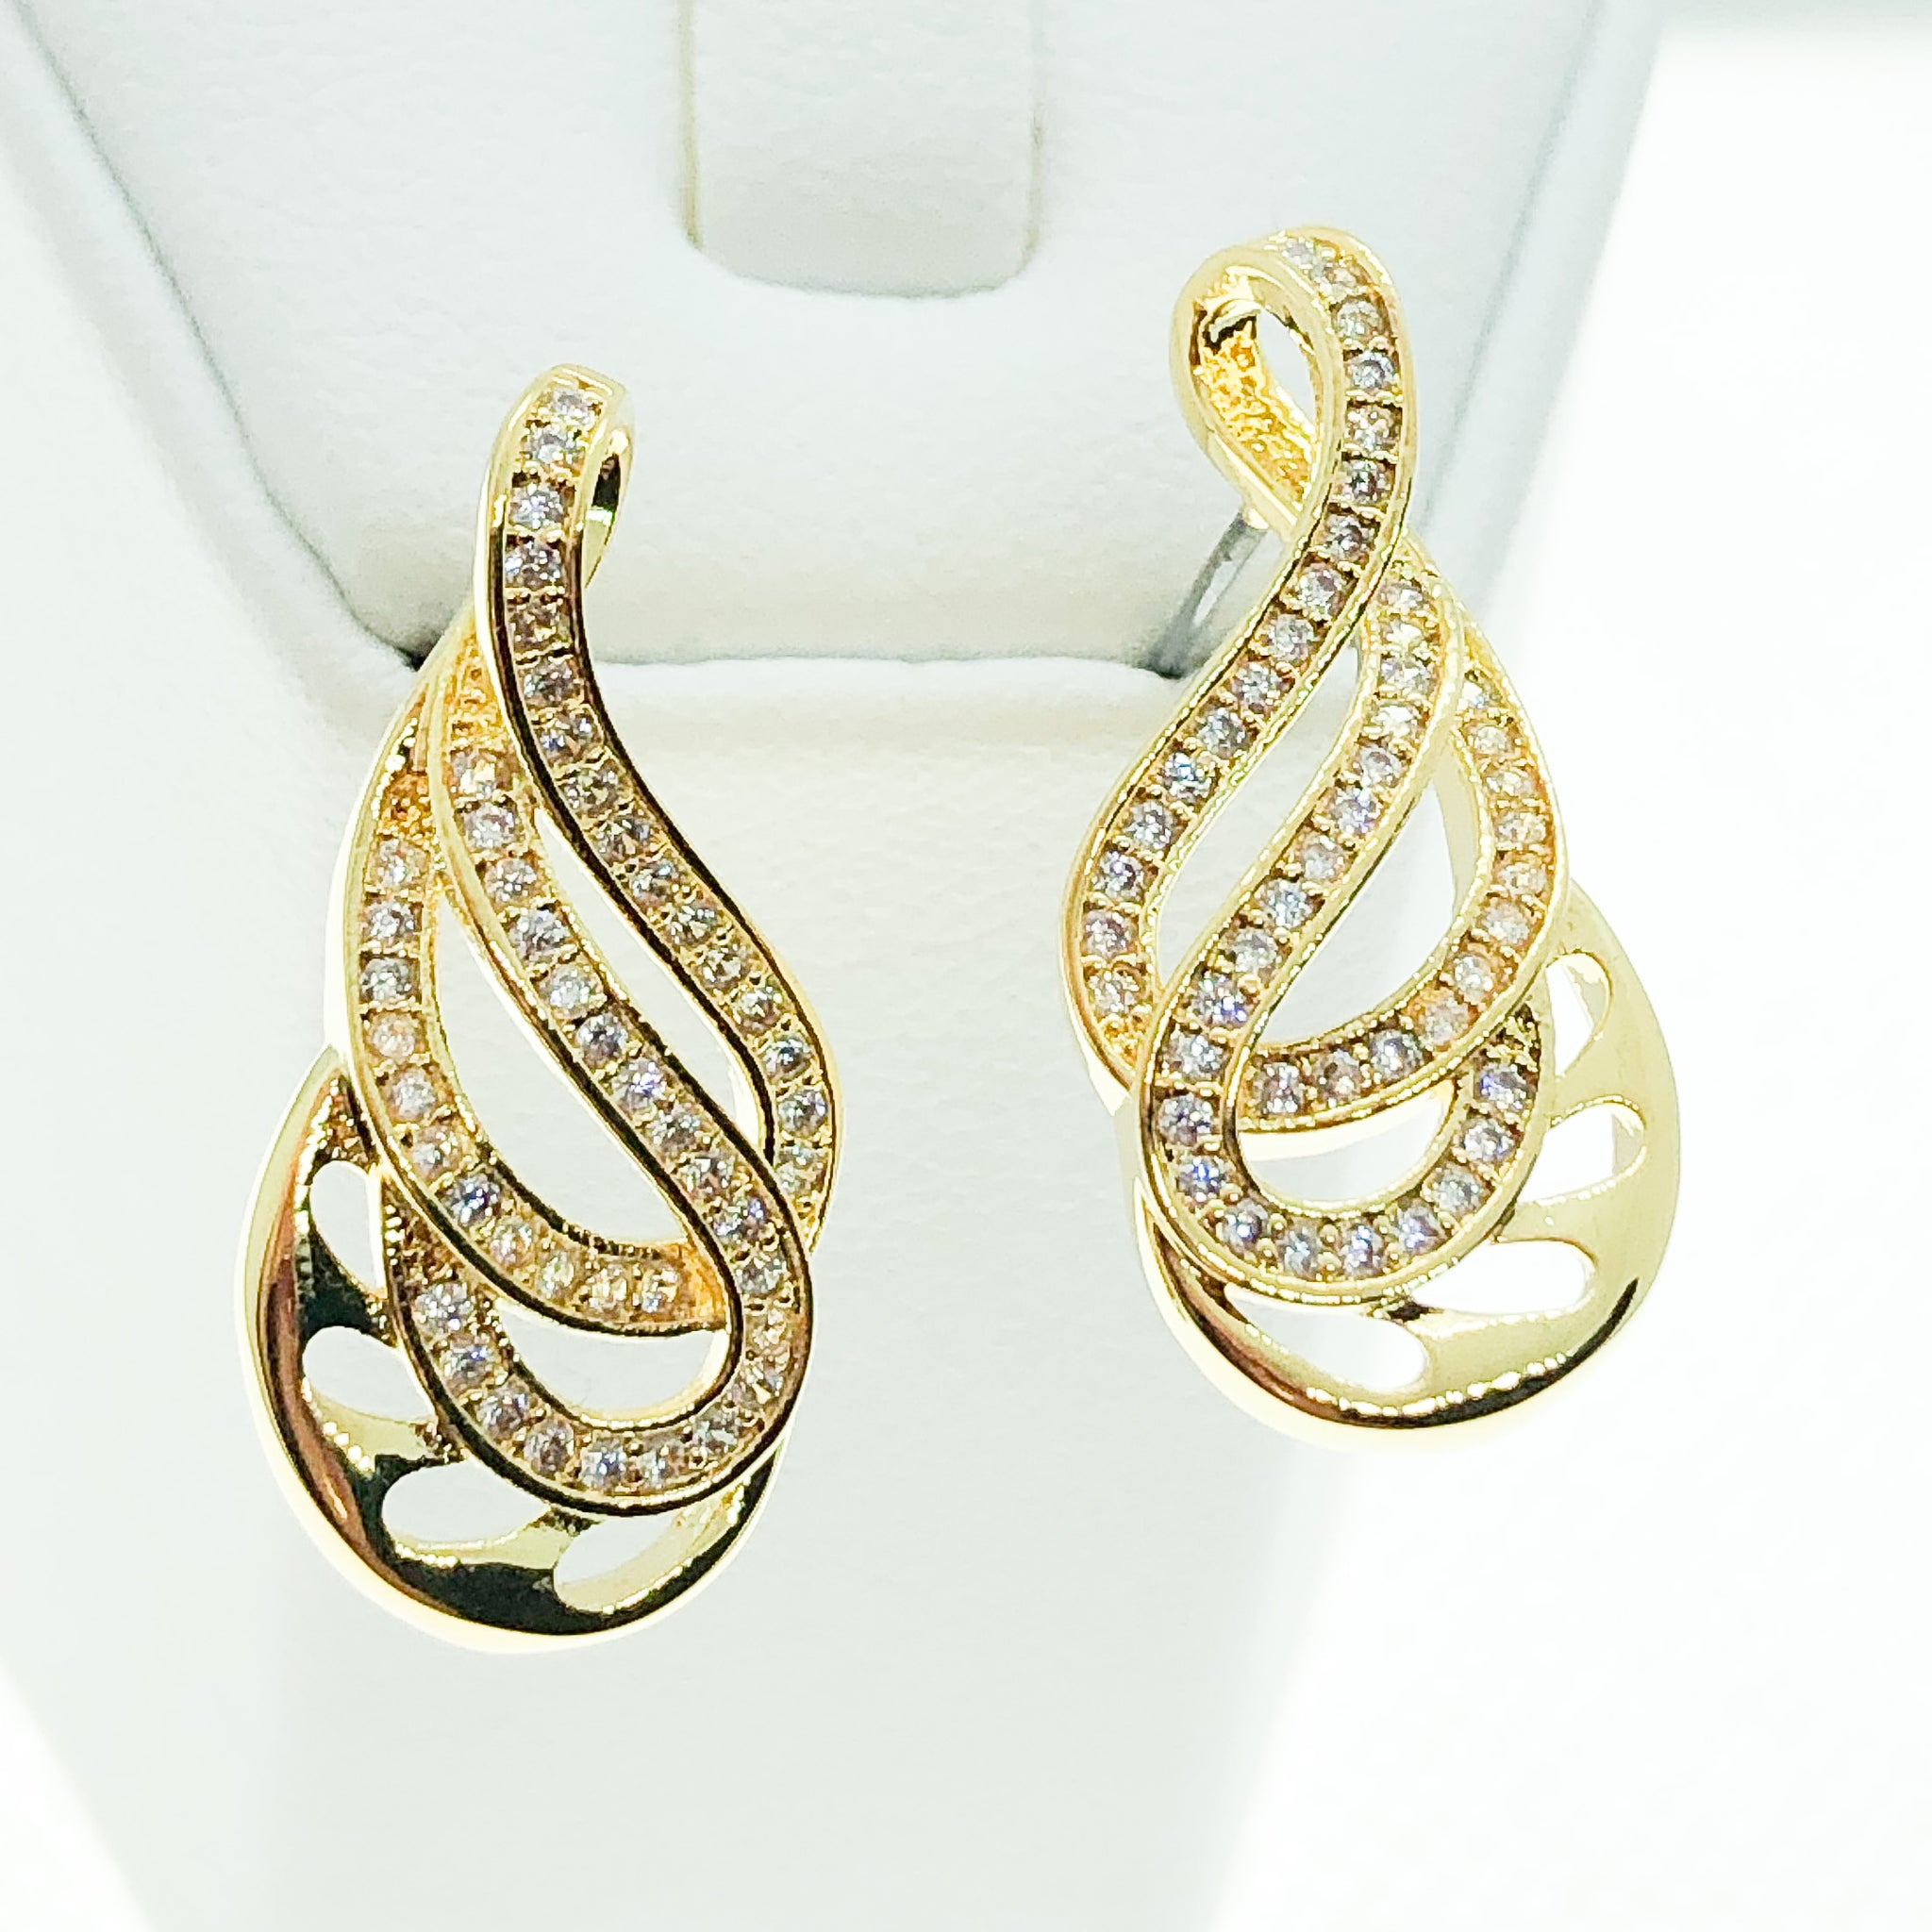 ID: E4210 WOMEN JEWELRY 18K YELLOW GOLD GF SHINING CLEAR ROUND STONES ETERNITY EARRINGS FASHION LADY DROP DANGLE